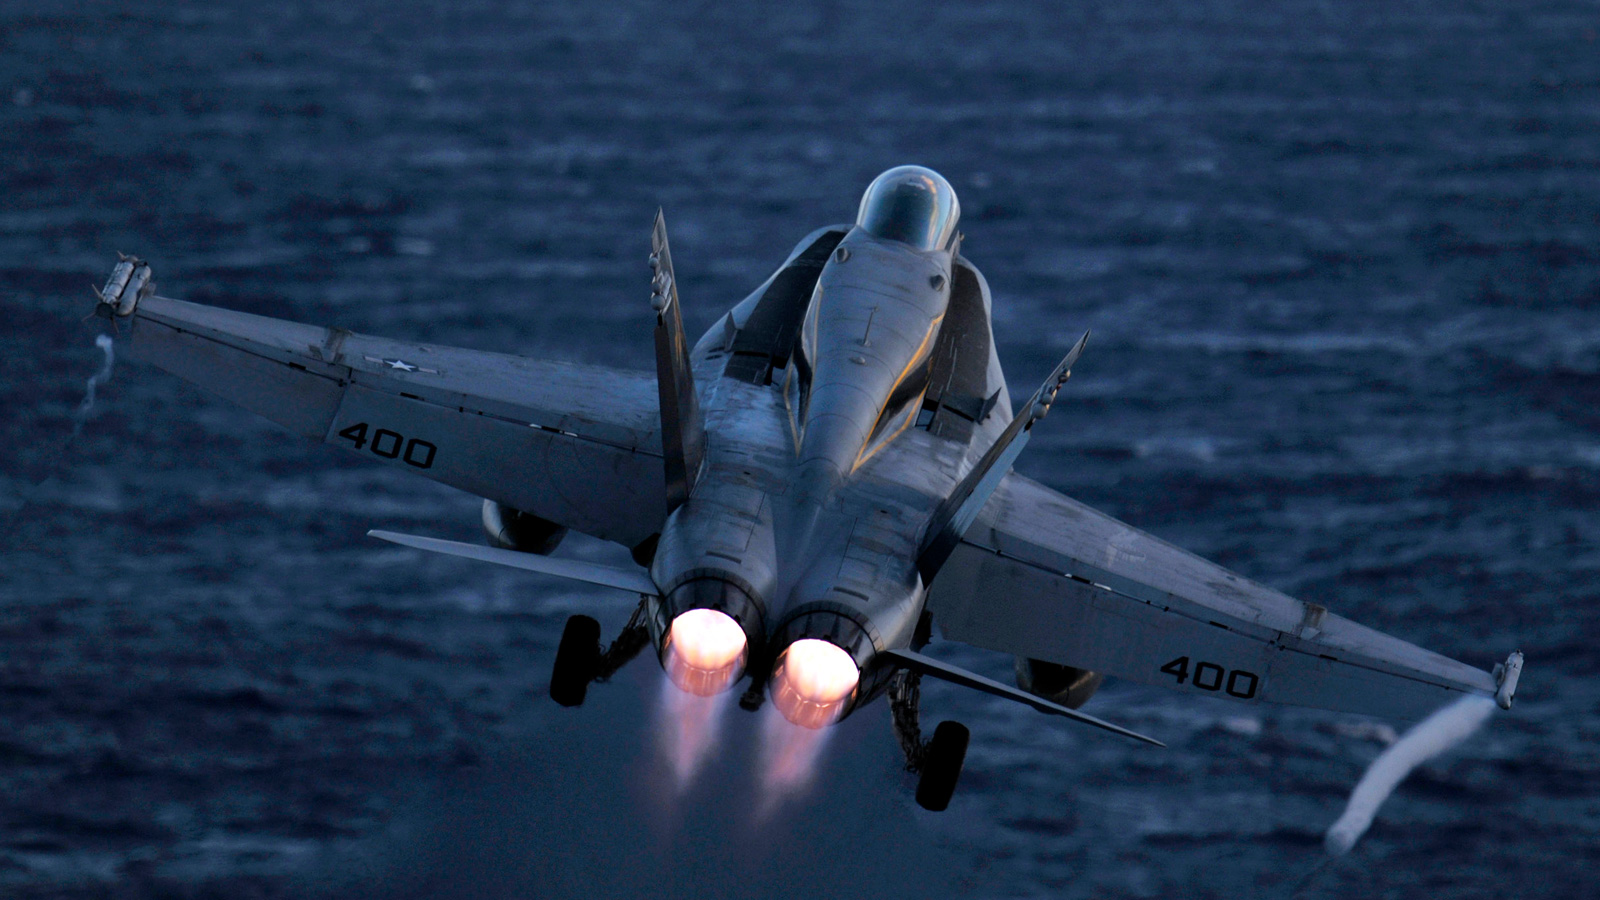 Click here to read F-18 Launching at Night Is My Favorite Airporn of the Week